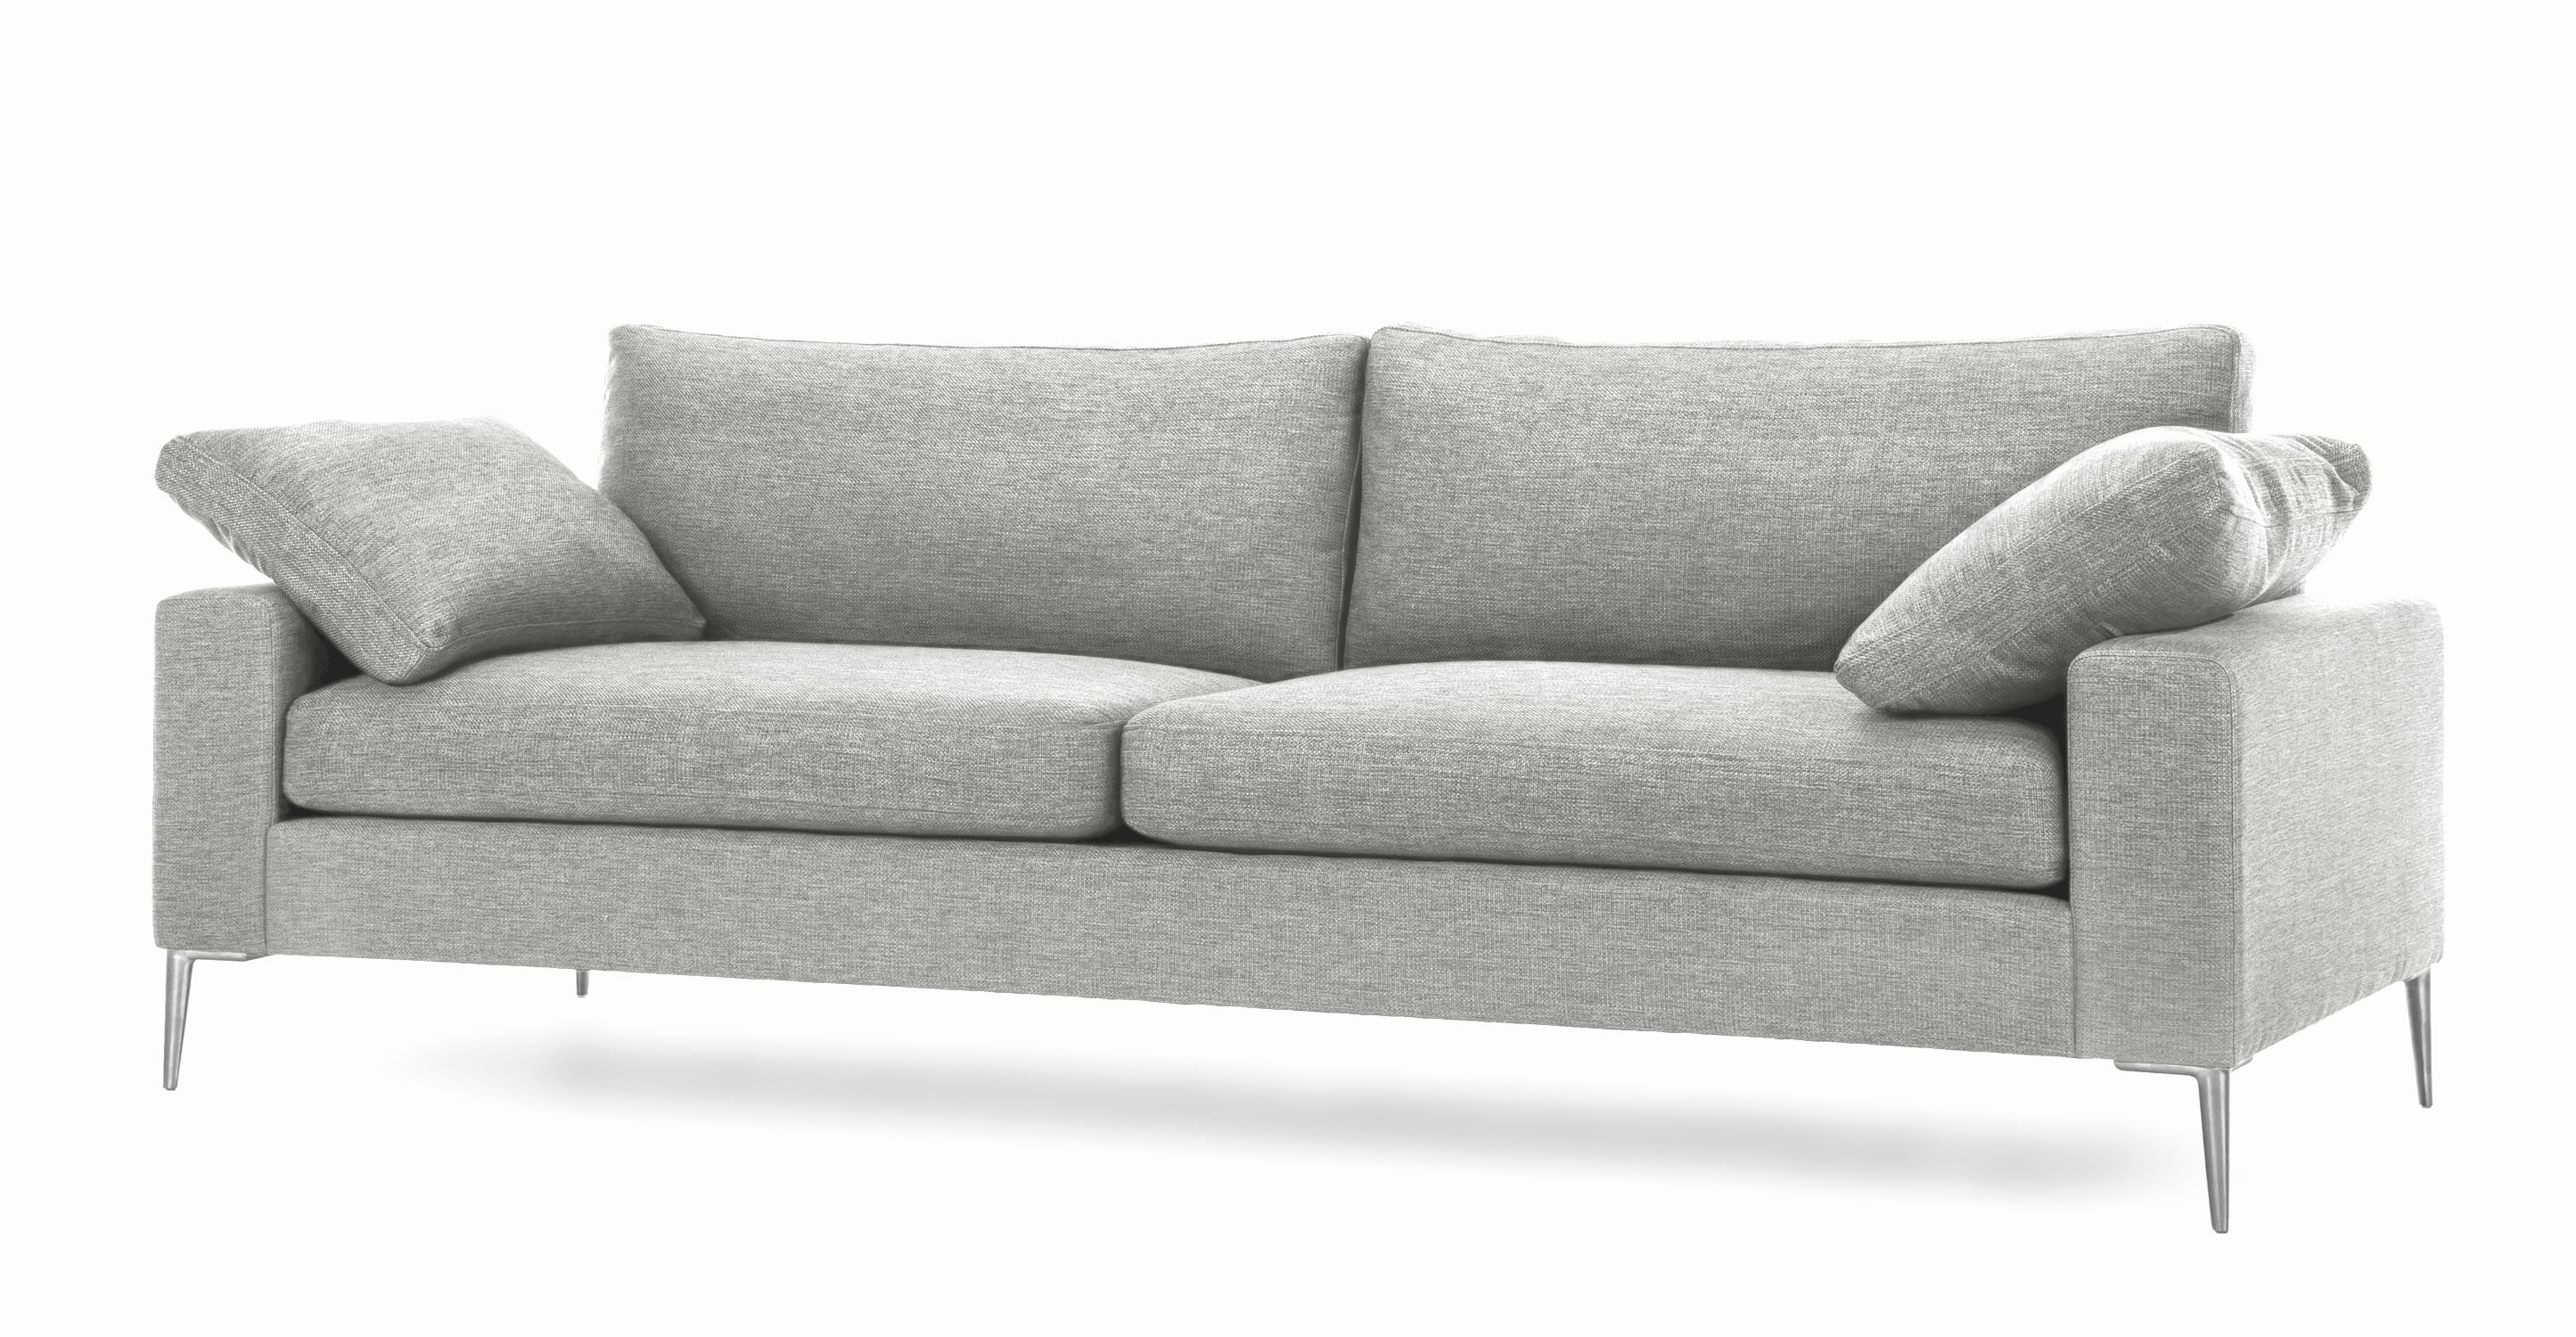 Inspirational Modern Gray Sofa Photographs Modern Gray Sofa Fresh